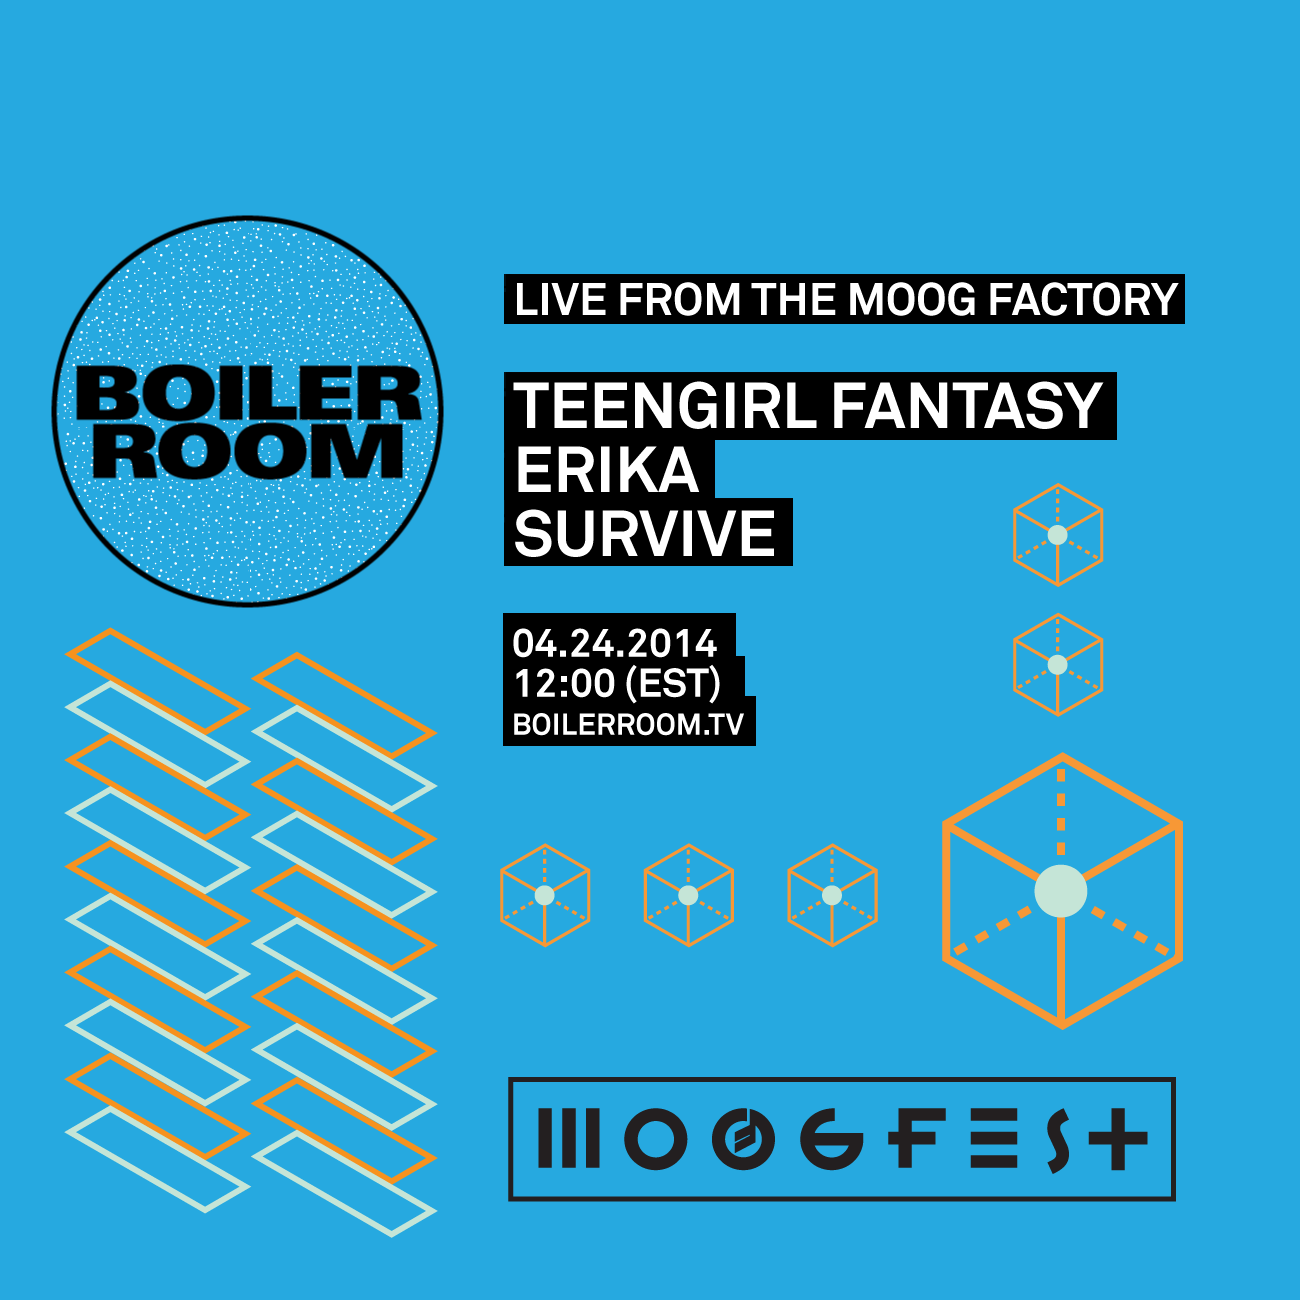 Live From the Moog Factory Flyer Image